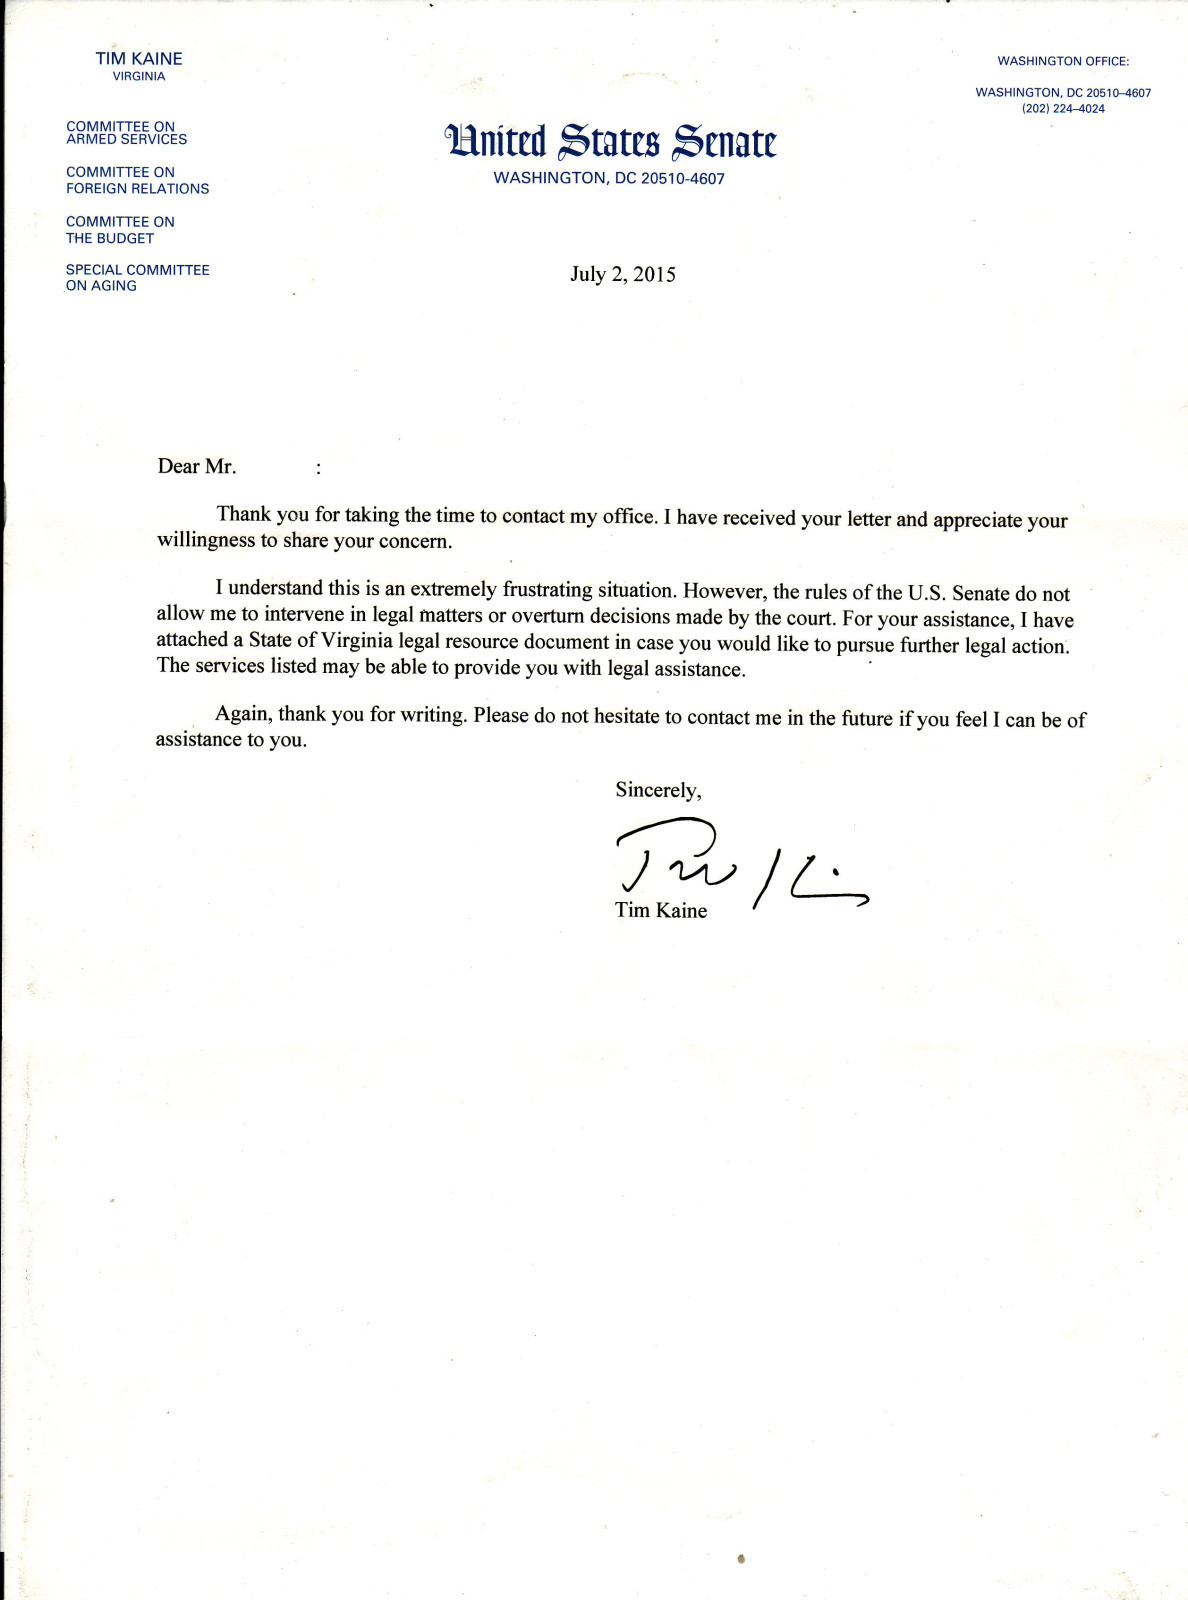 Letter From Virginia State Senator Tim Kaine - Senator of Virginia Tim Kaine